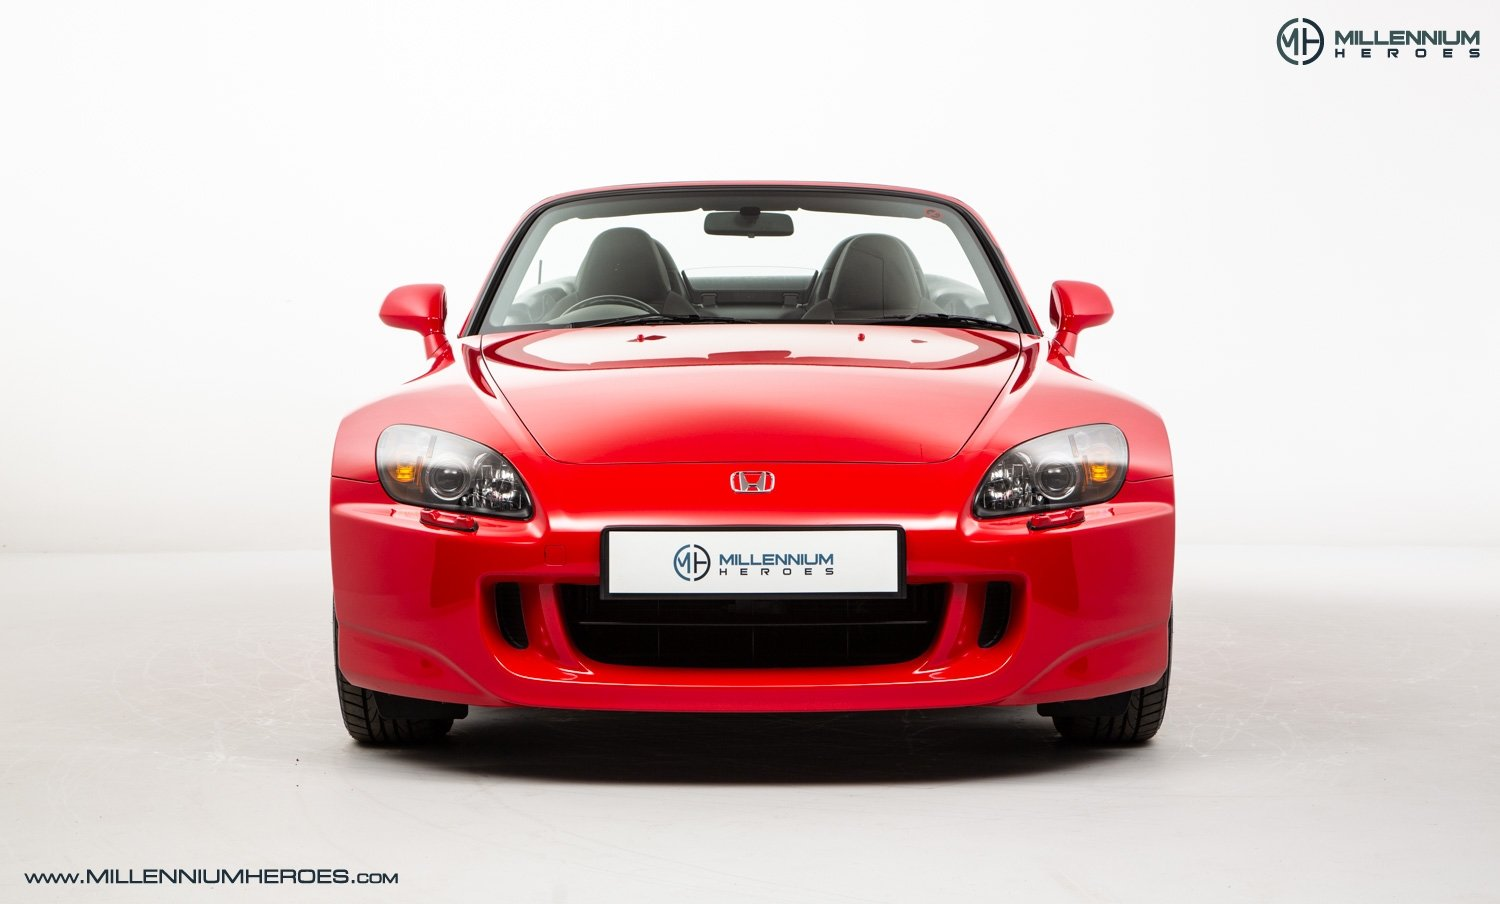 2007 HONDA S2000  For Sale (picture 2 of 21)